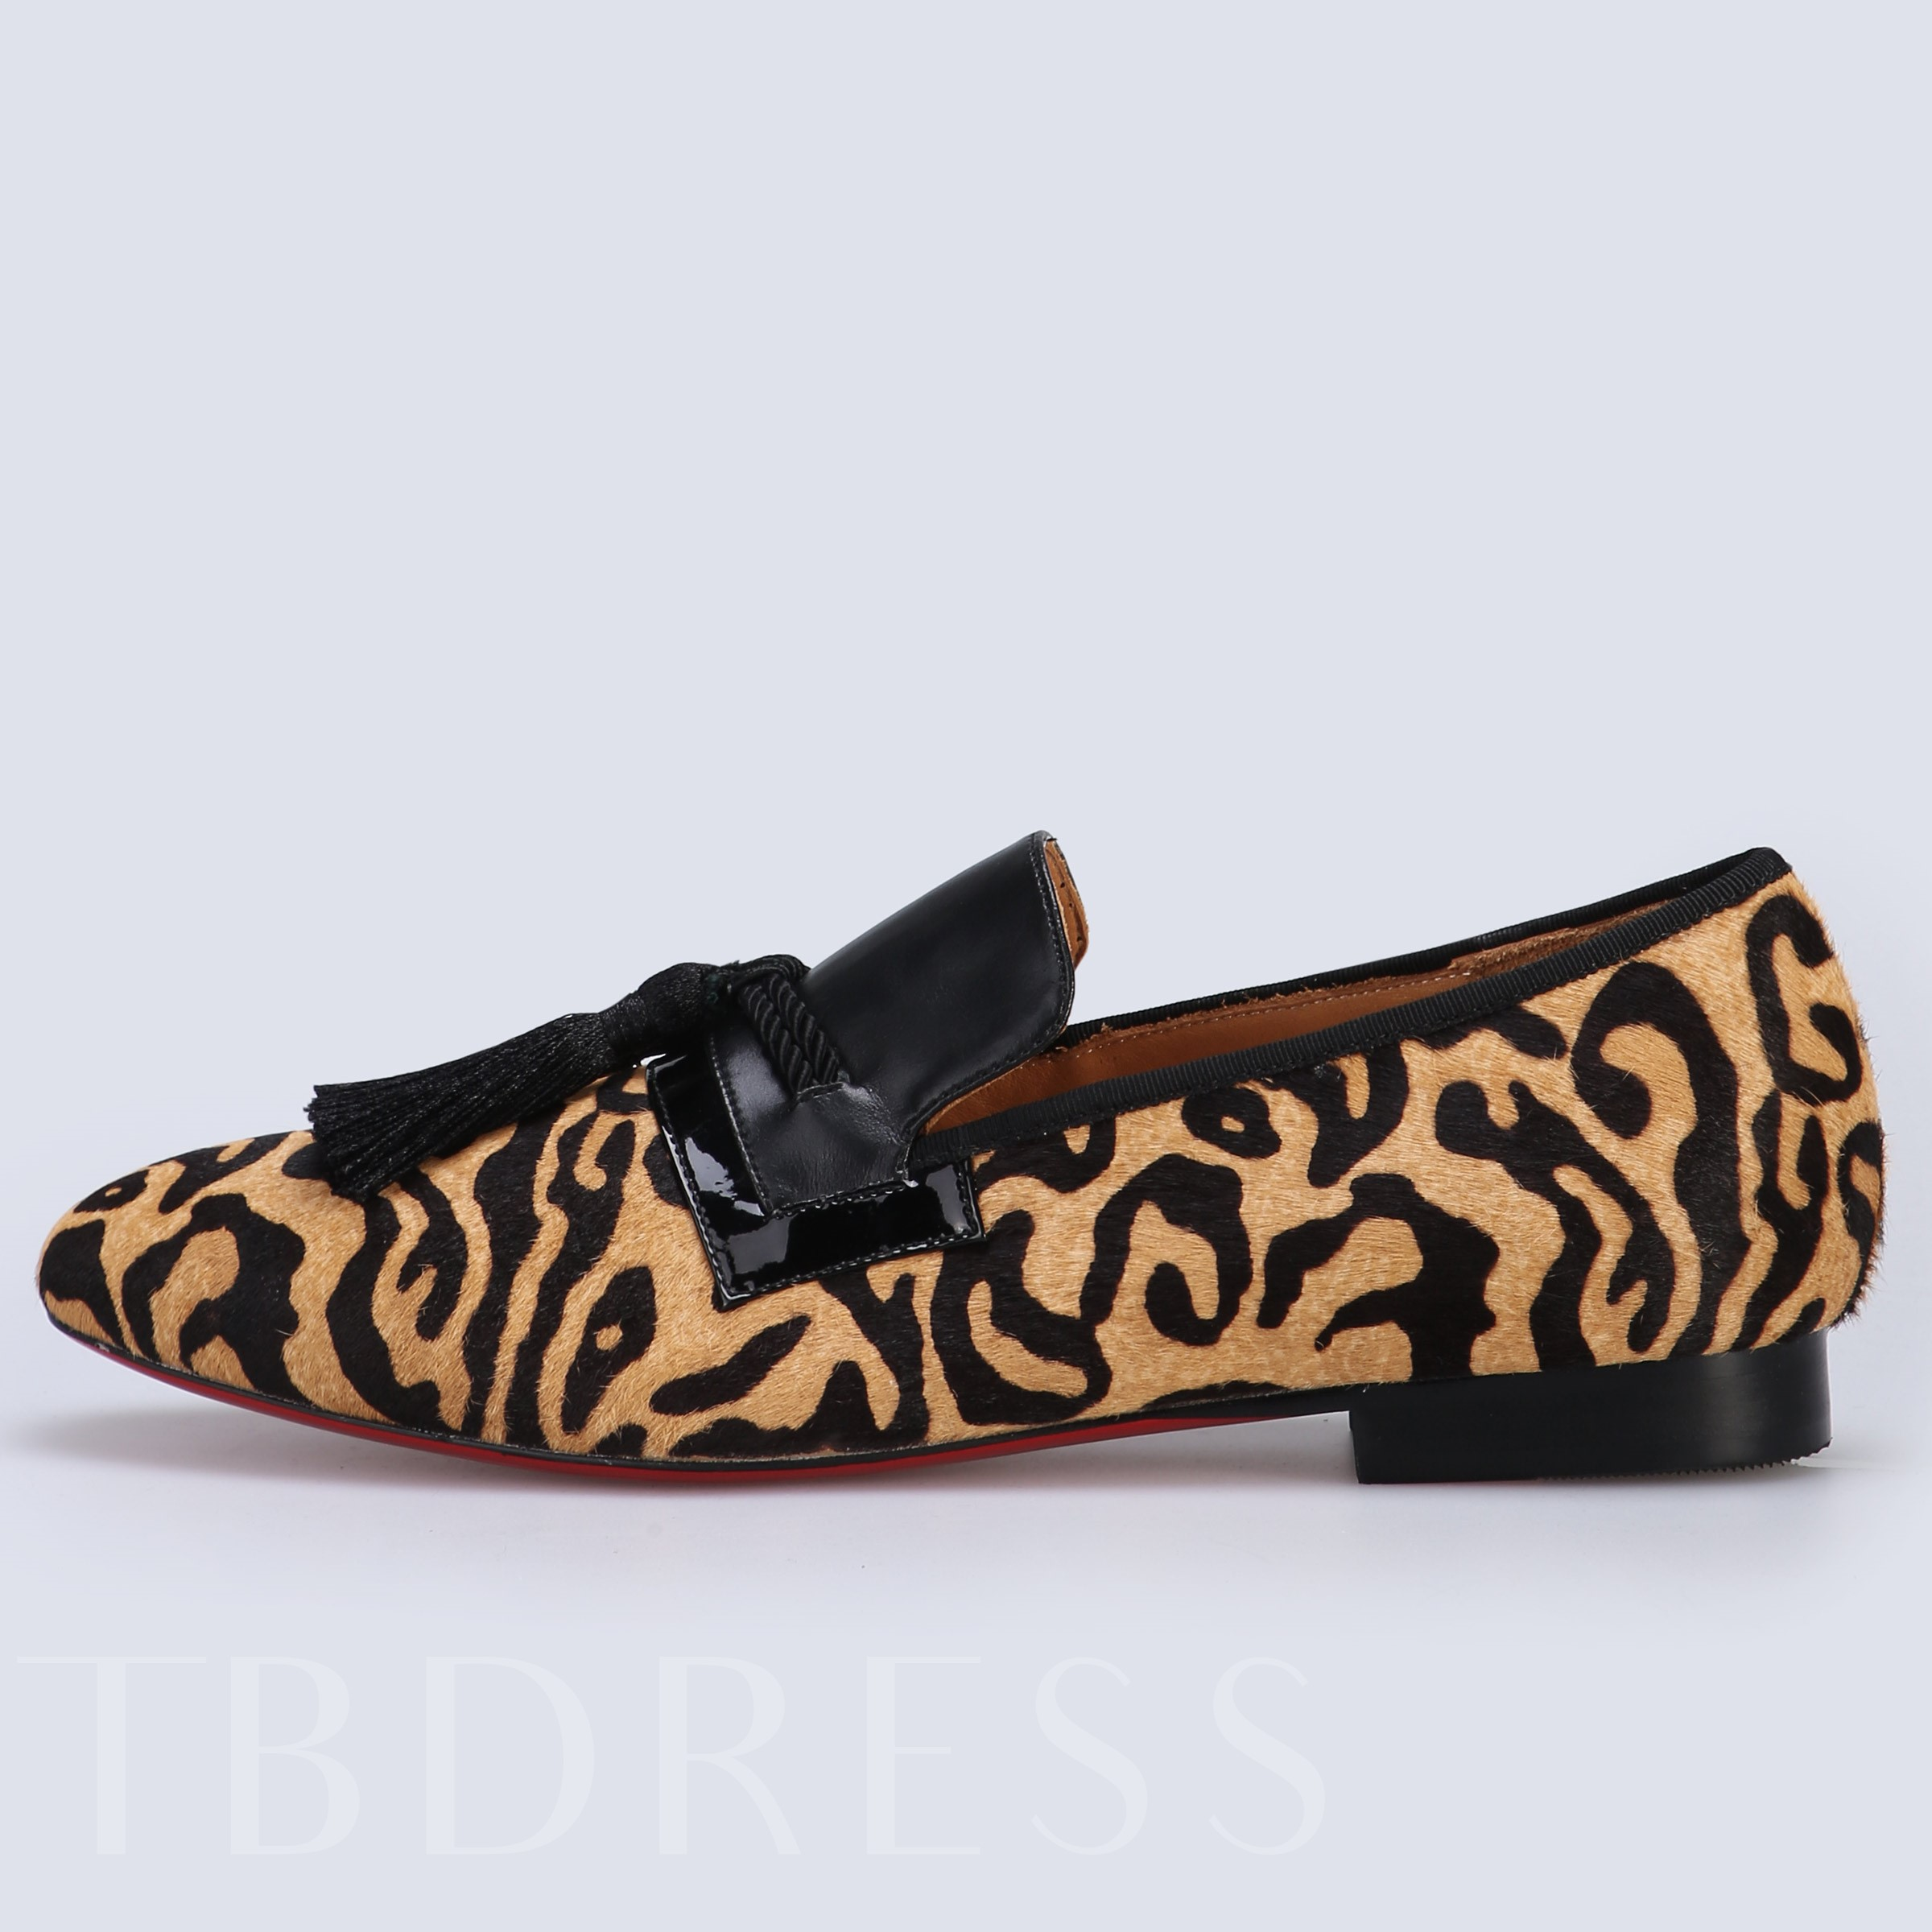 Patchwork Leopard Pattern Slip-On Fringe Unique Men's Oxford